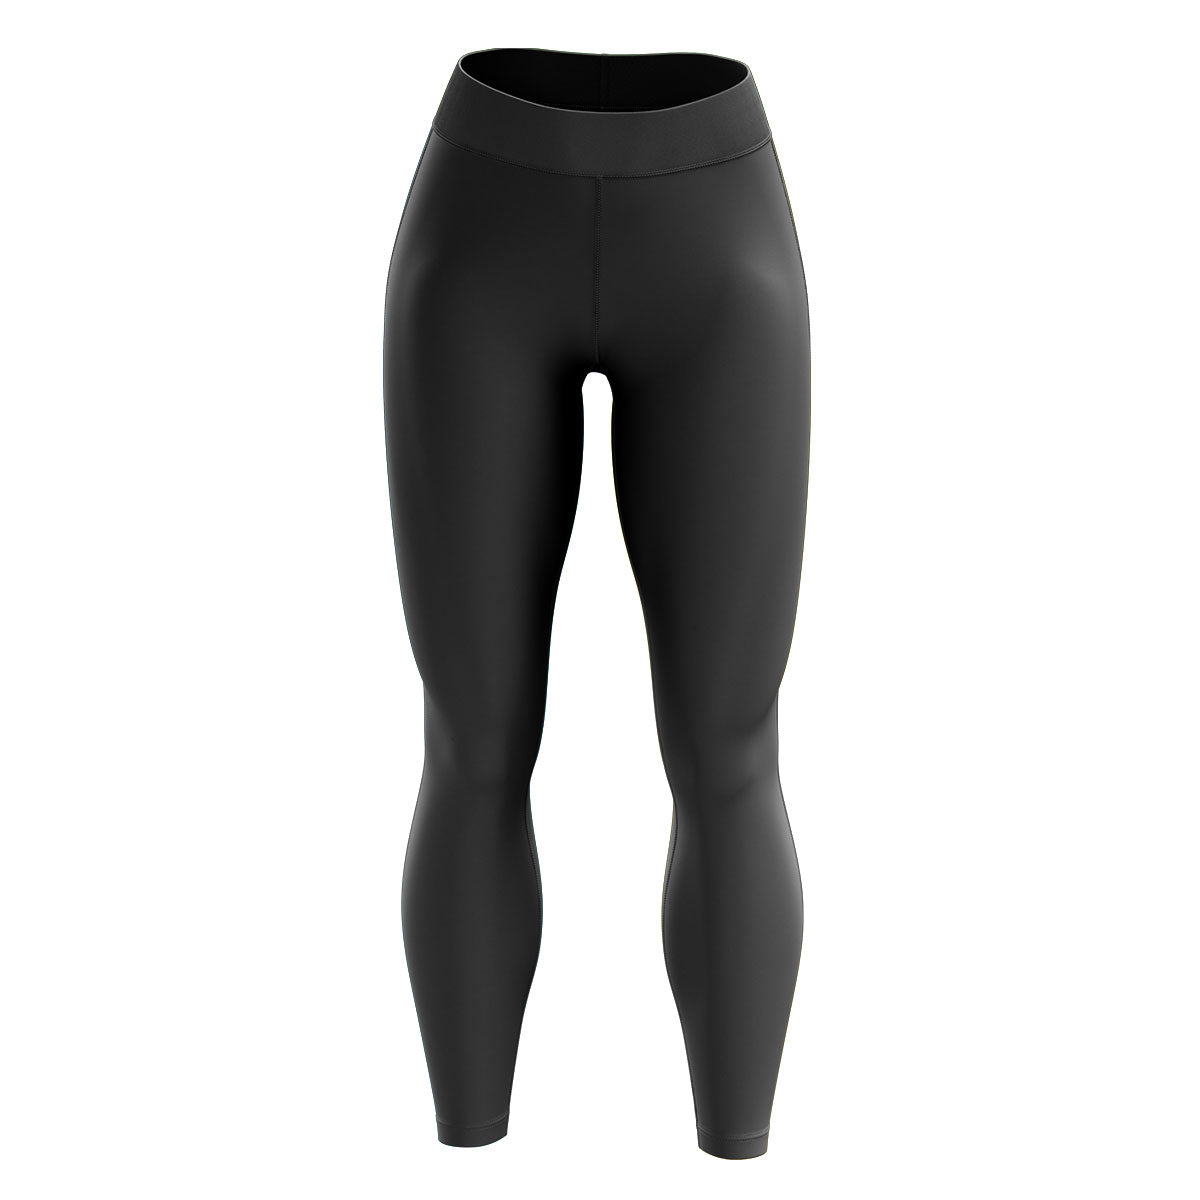 Black High Waisted Yoga Leggings